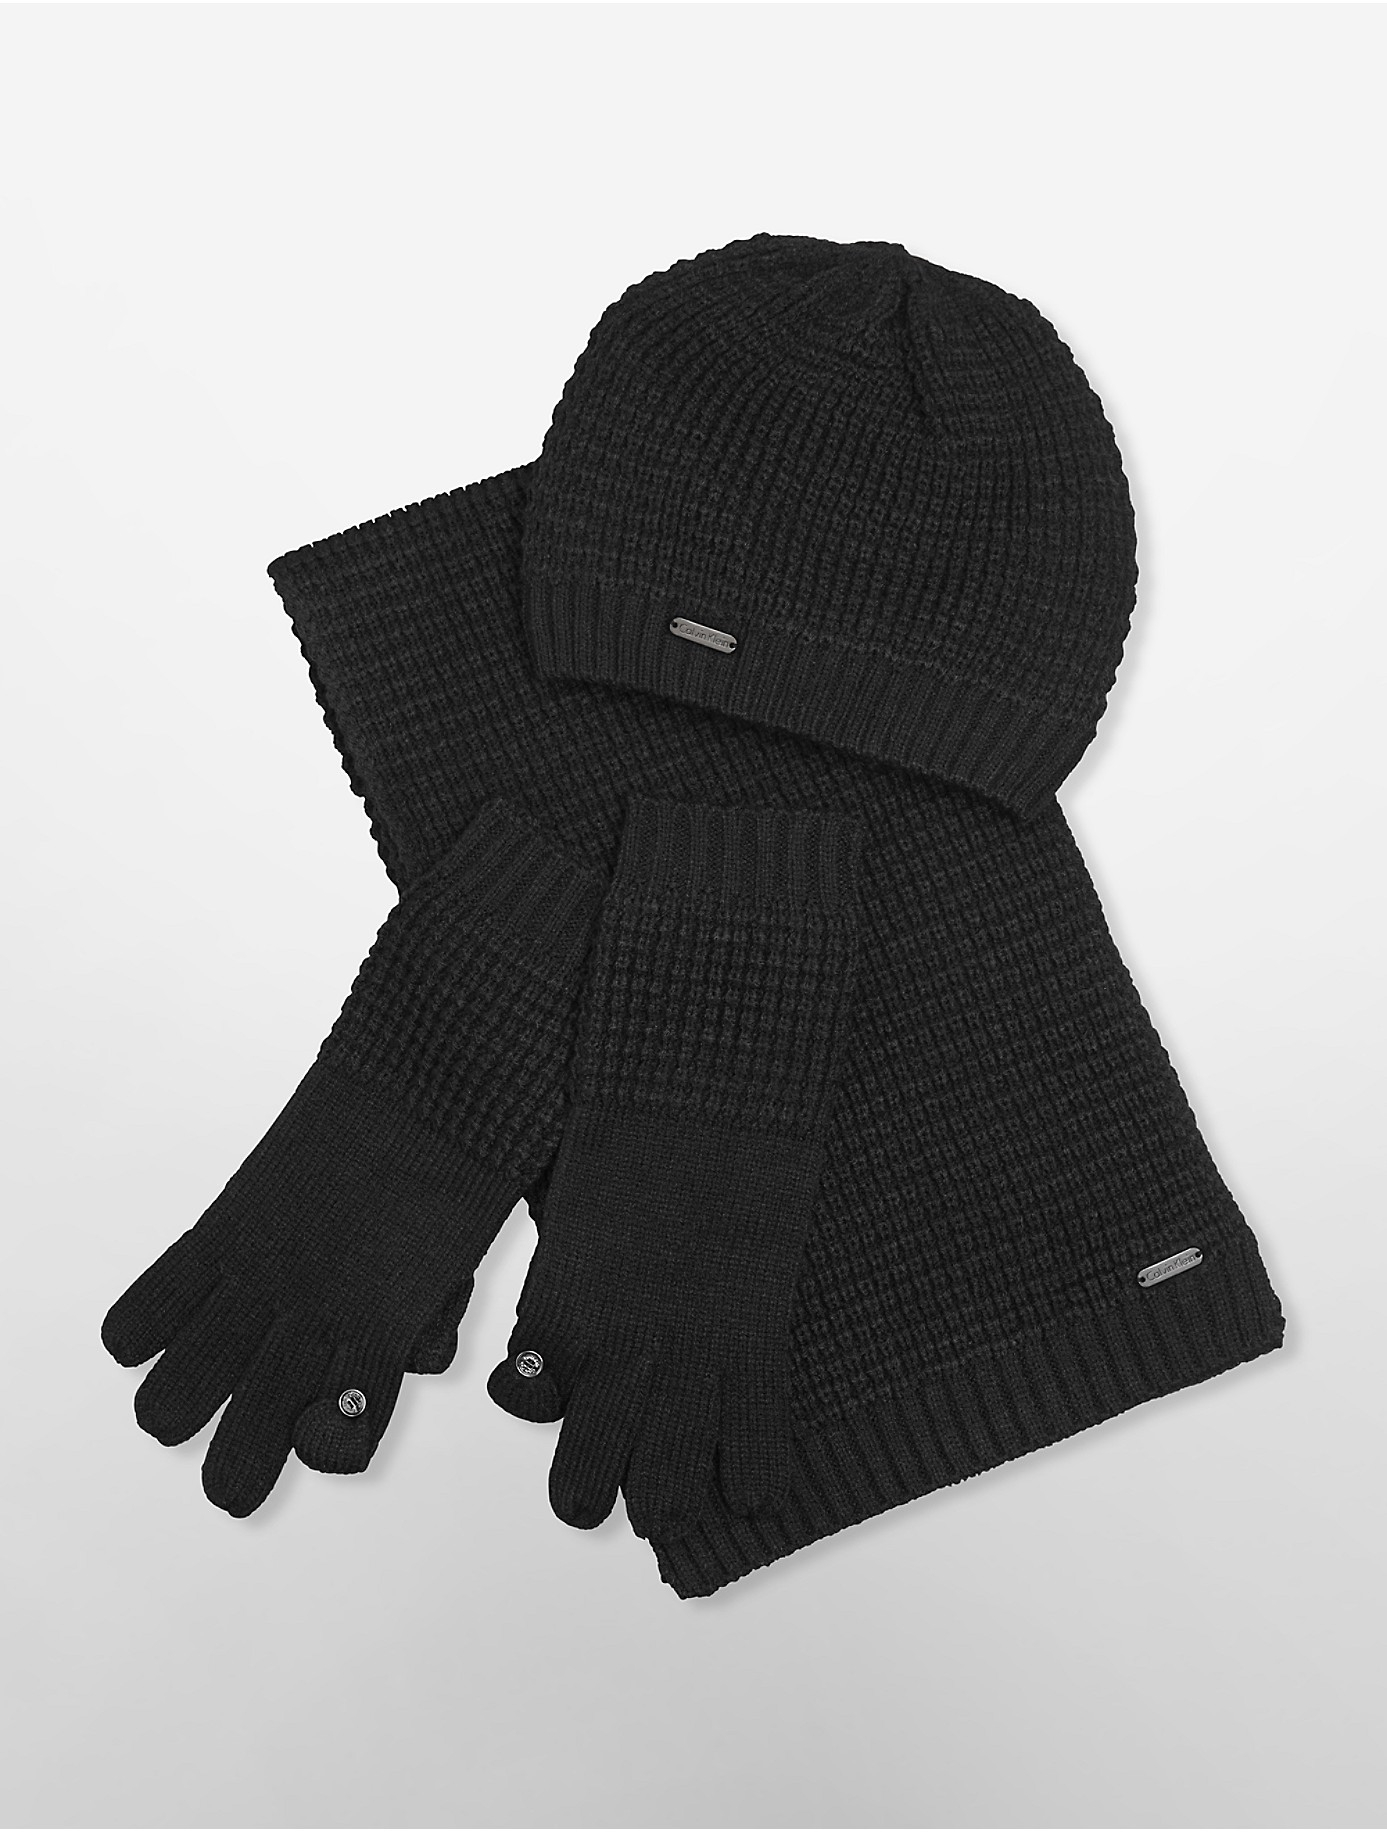 Knitting Pattern For Hat Scarf And Gloves : Calvin klein Waffle Knit Hat Gloves Scarf Set in Black Lyst